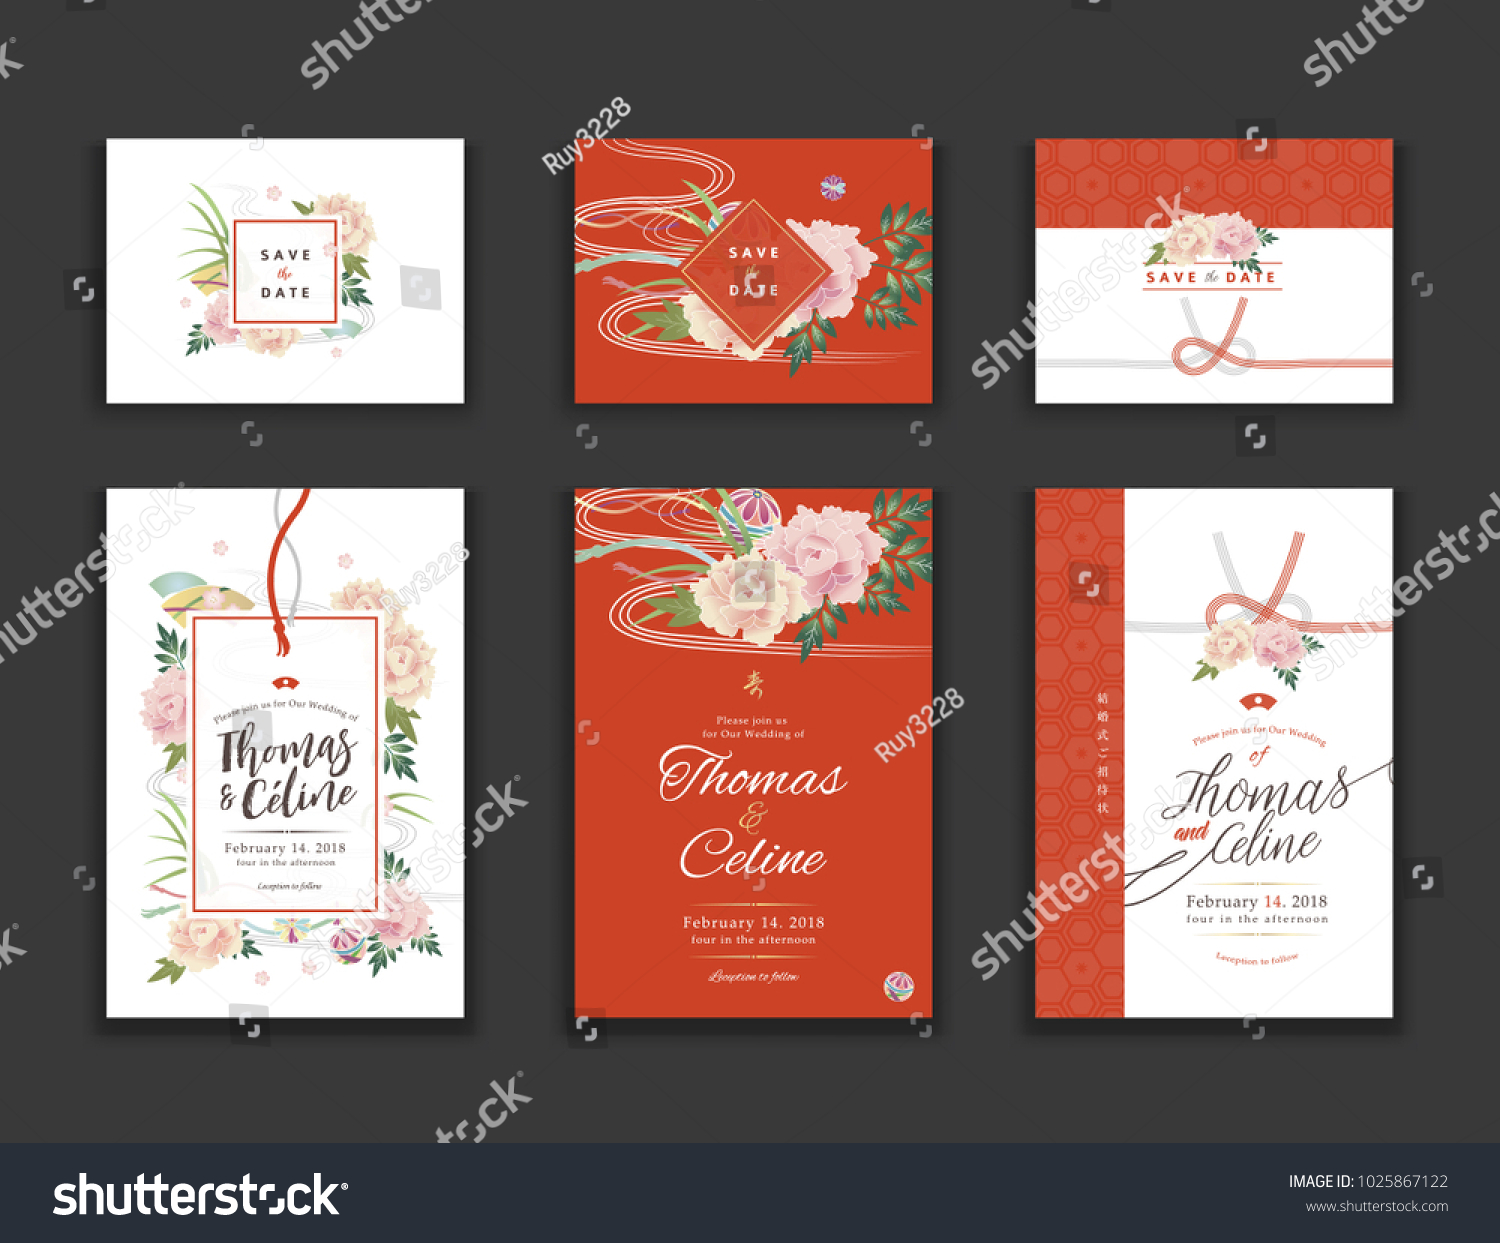 Set Save Date Cards Wedding Invitations Stock Vector (Royalty Free ...